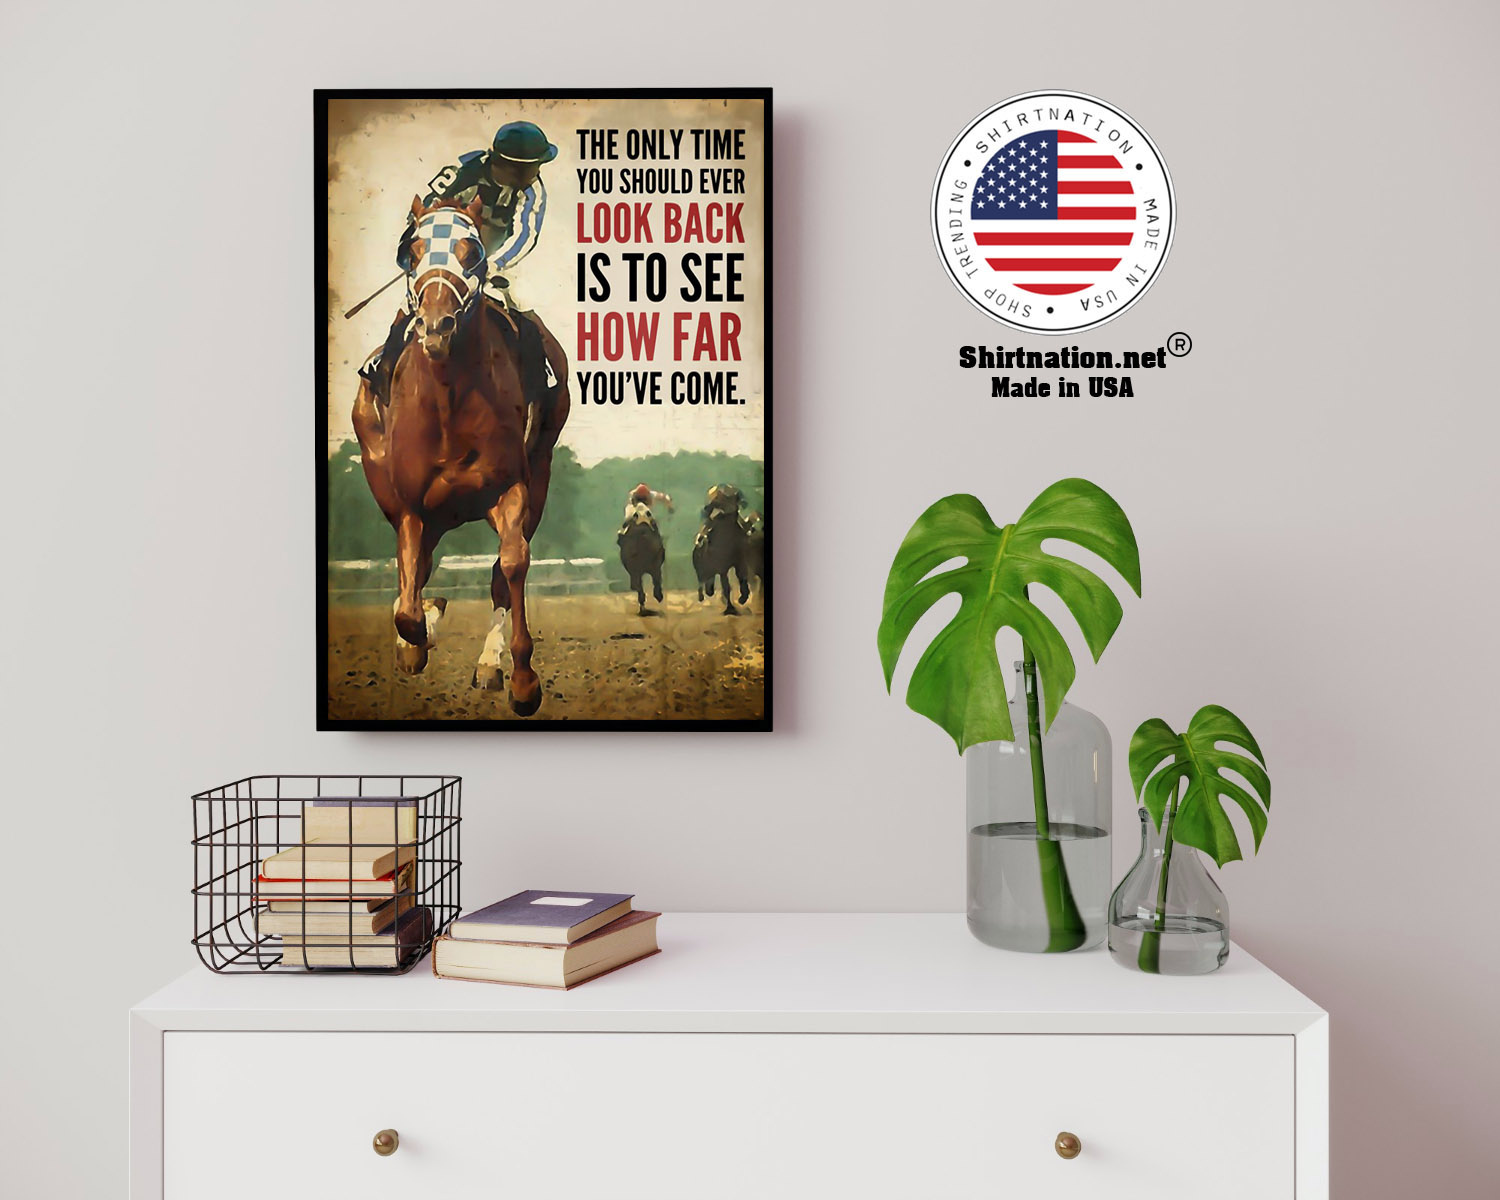 The only time you should ever look back is see how far youve come poster 14 1